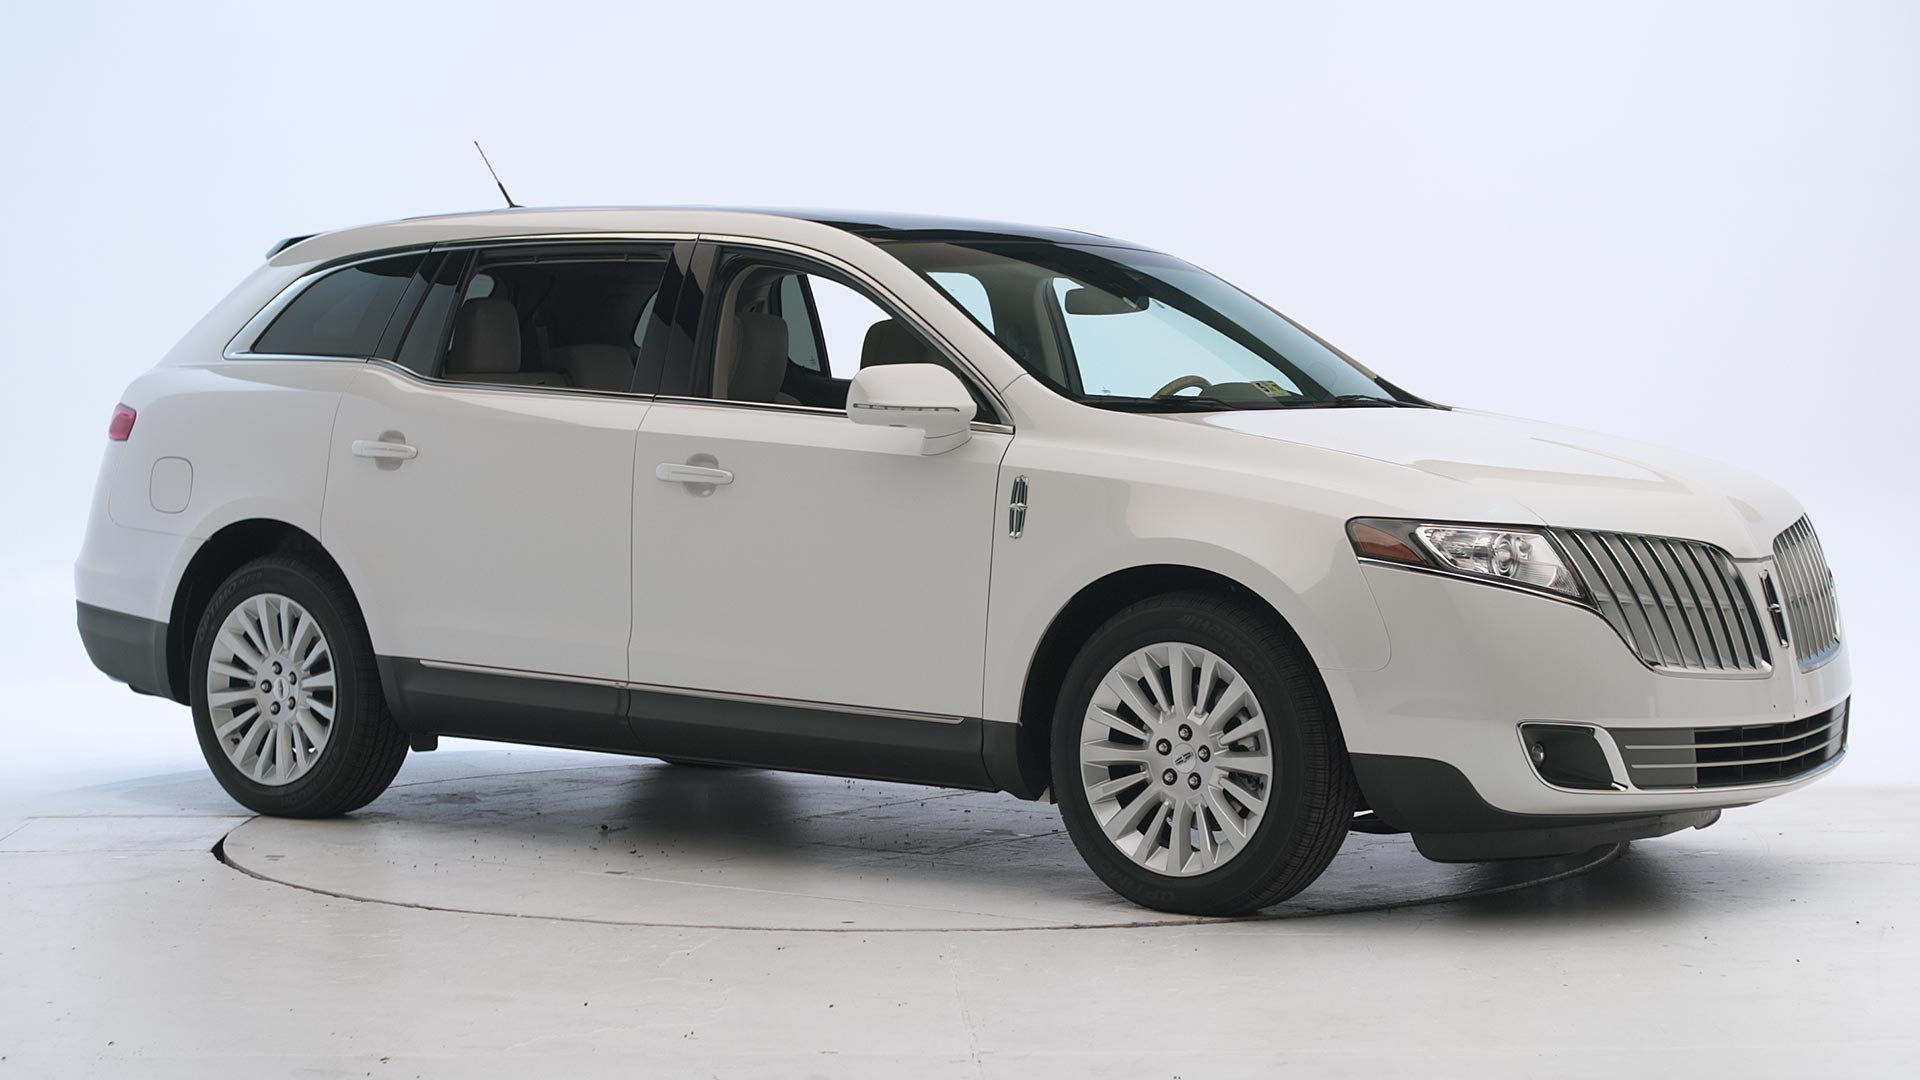 2010 Lincoln MKT 4-door SUV